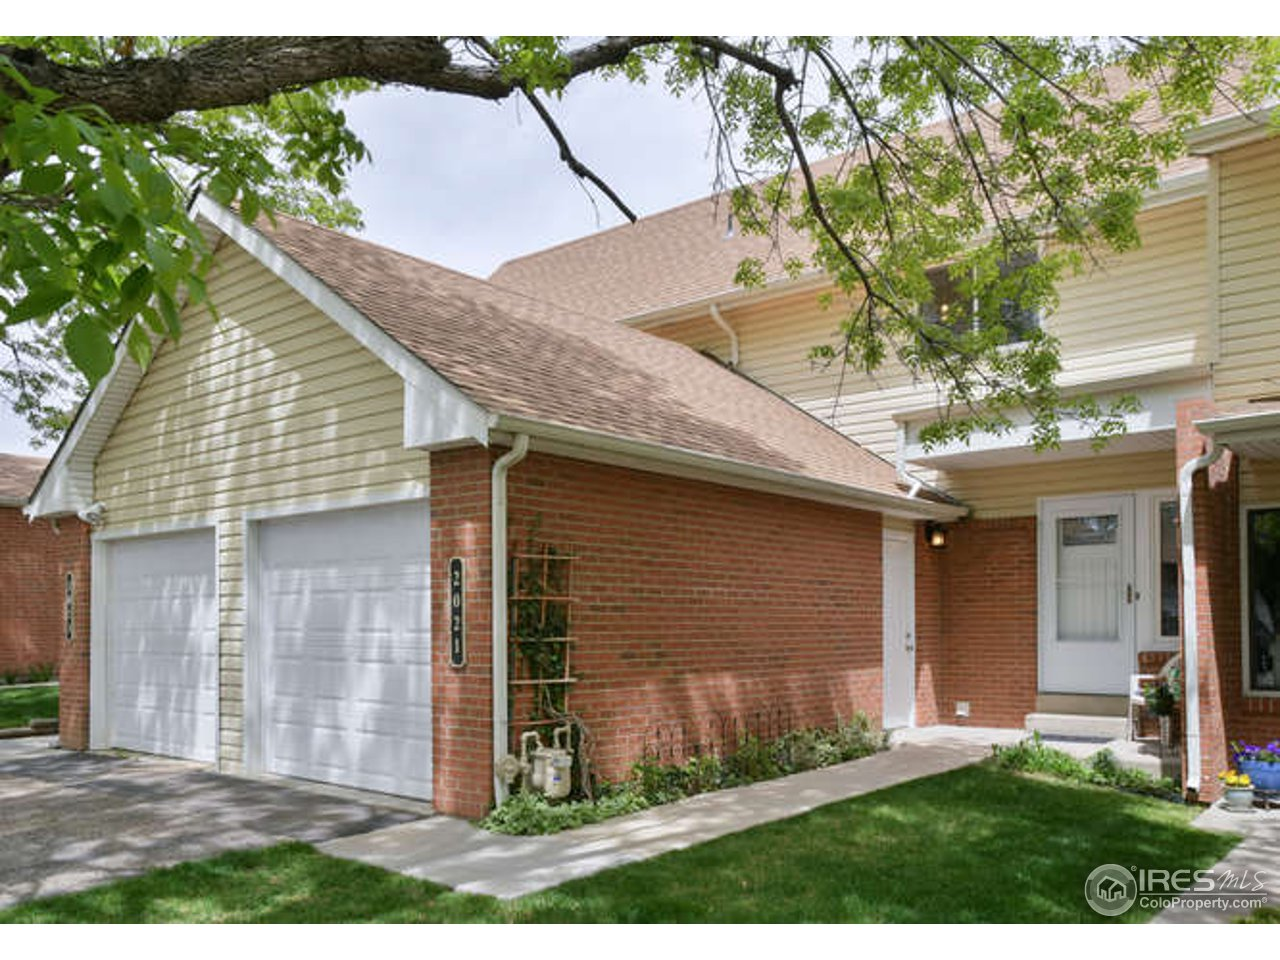 This home is immaculate and move in ready with lots of high quality finishes throughout! Occupied by the same owners for the past 18 years. This home boasts hickory cabinets, high quality exterior doors, triple pane windows, newer garage door, a wood burning fireplace, and a beautiful wood deck on the private patio. Unfinished basement has tons of storage space and room for future expansion. Adjacent to open space and Coal Creek Trail! Steps and schools and short commute to Boulder!